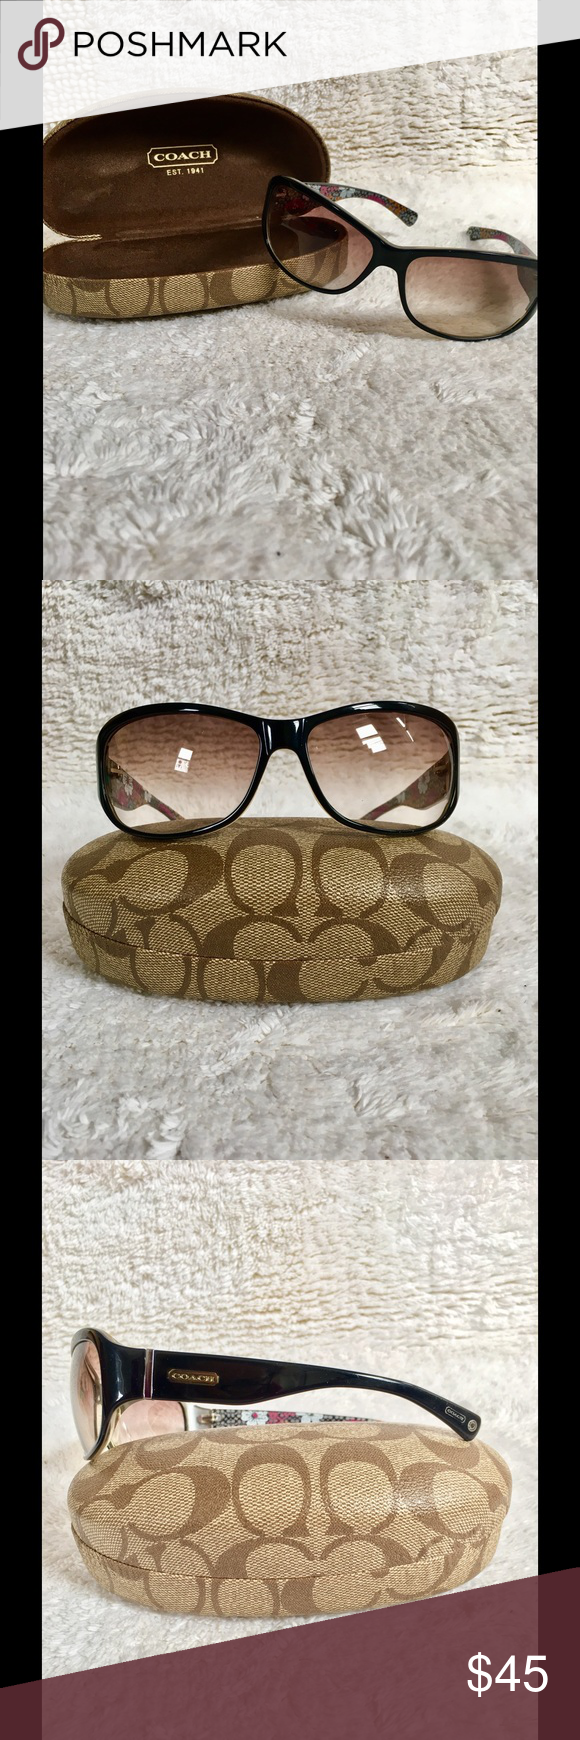 4577d7a24551d COACH Black Sarah (S437) Sunglasses This oversized sunglass from COACH is a  stable piece